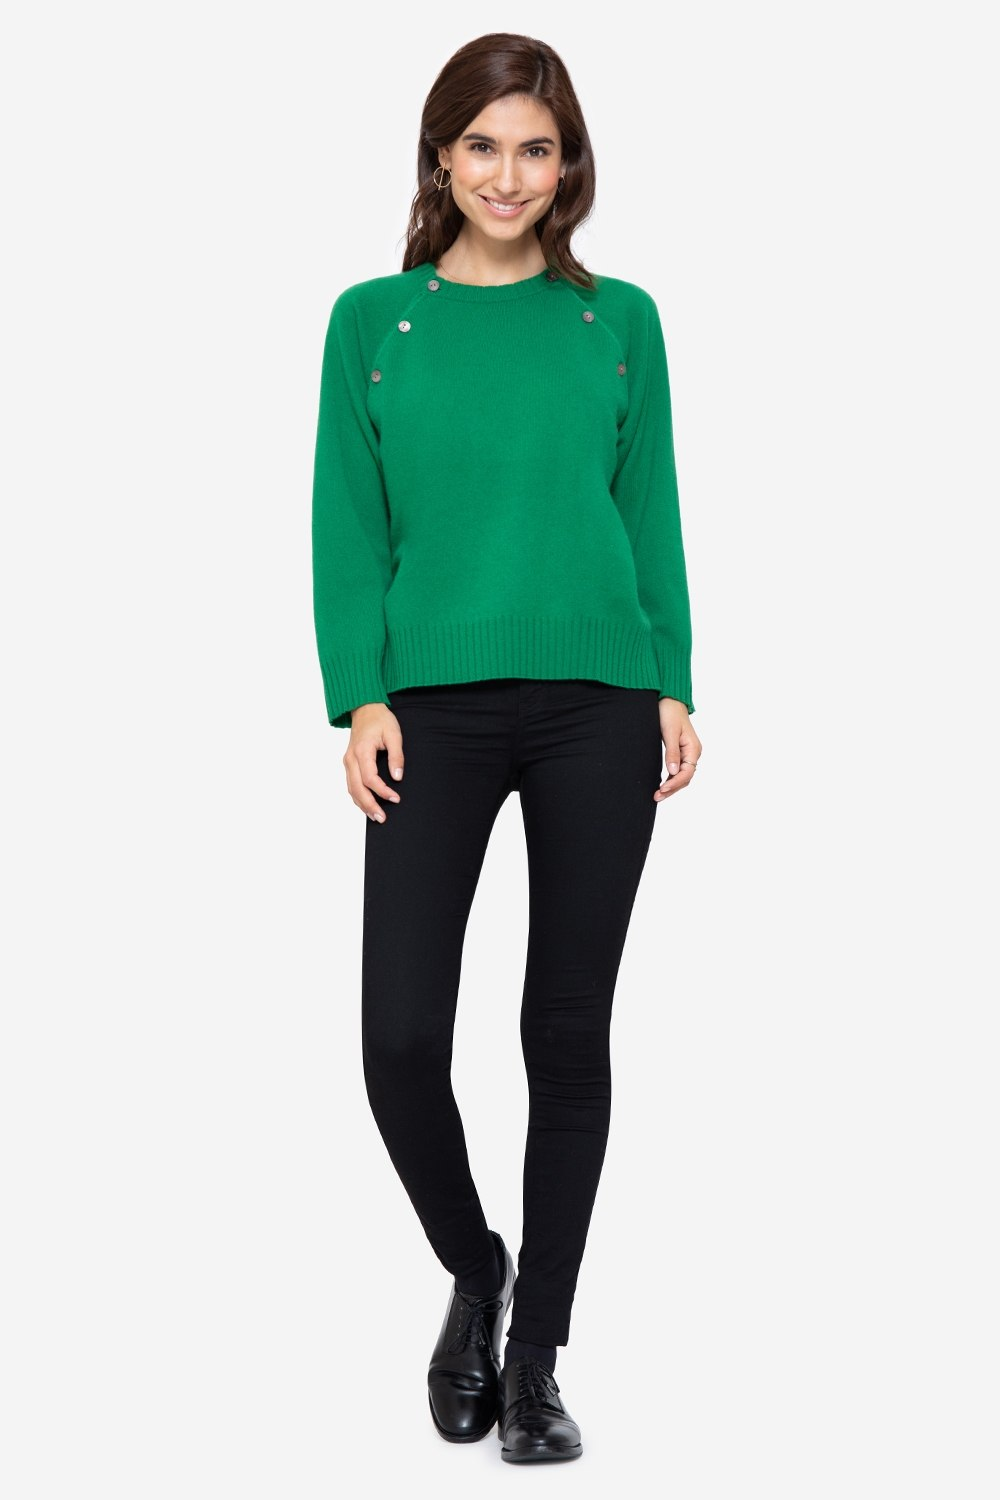 Soft green cashmere nursing jumper with buttons access, full figur